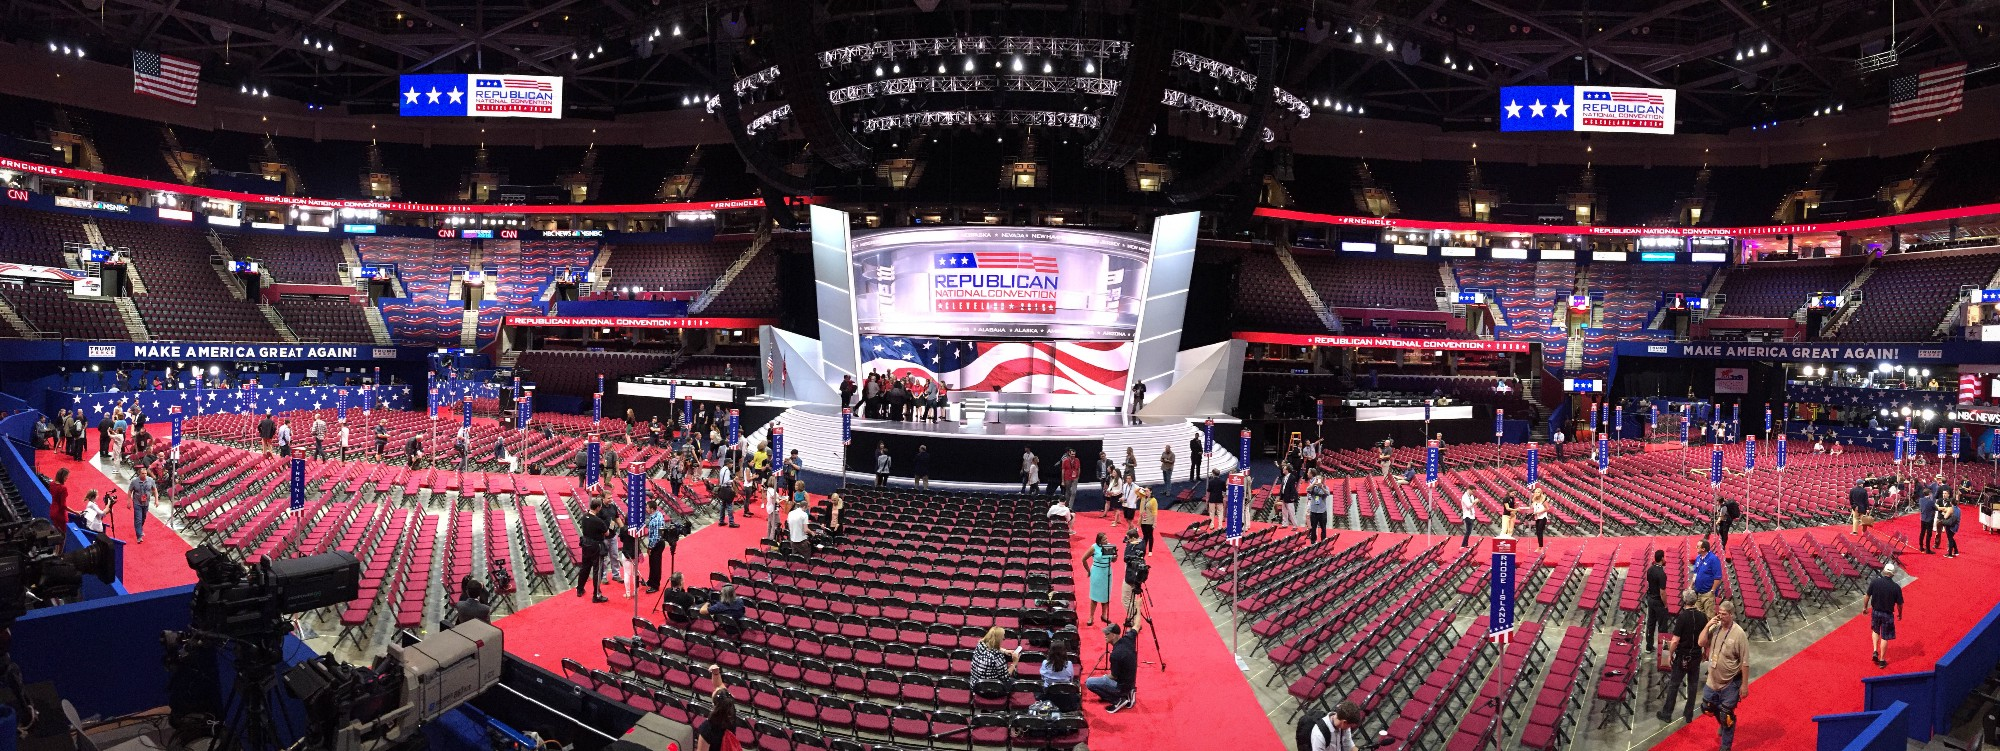 Cleveland Gets Ready To Rock The RNC: Day Zero in Pictures